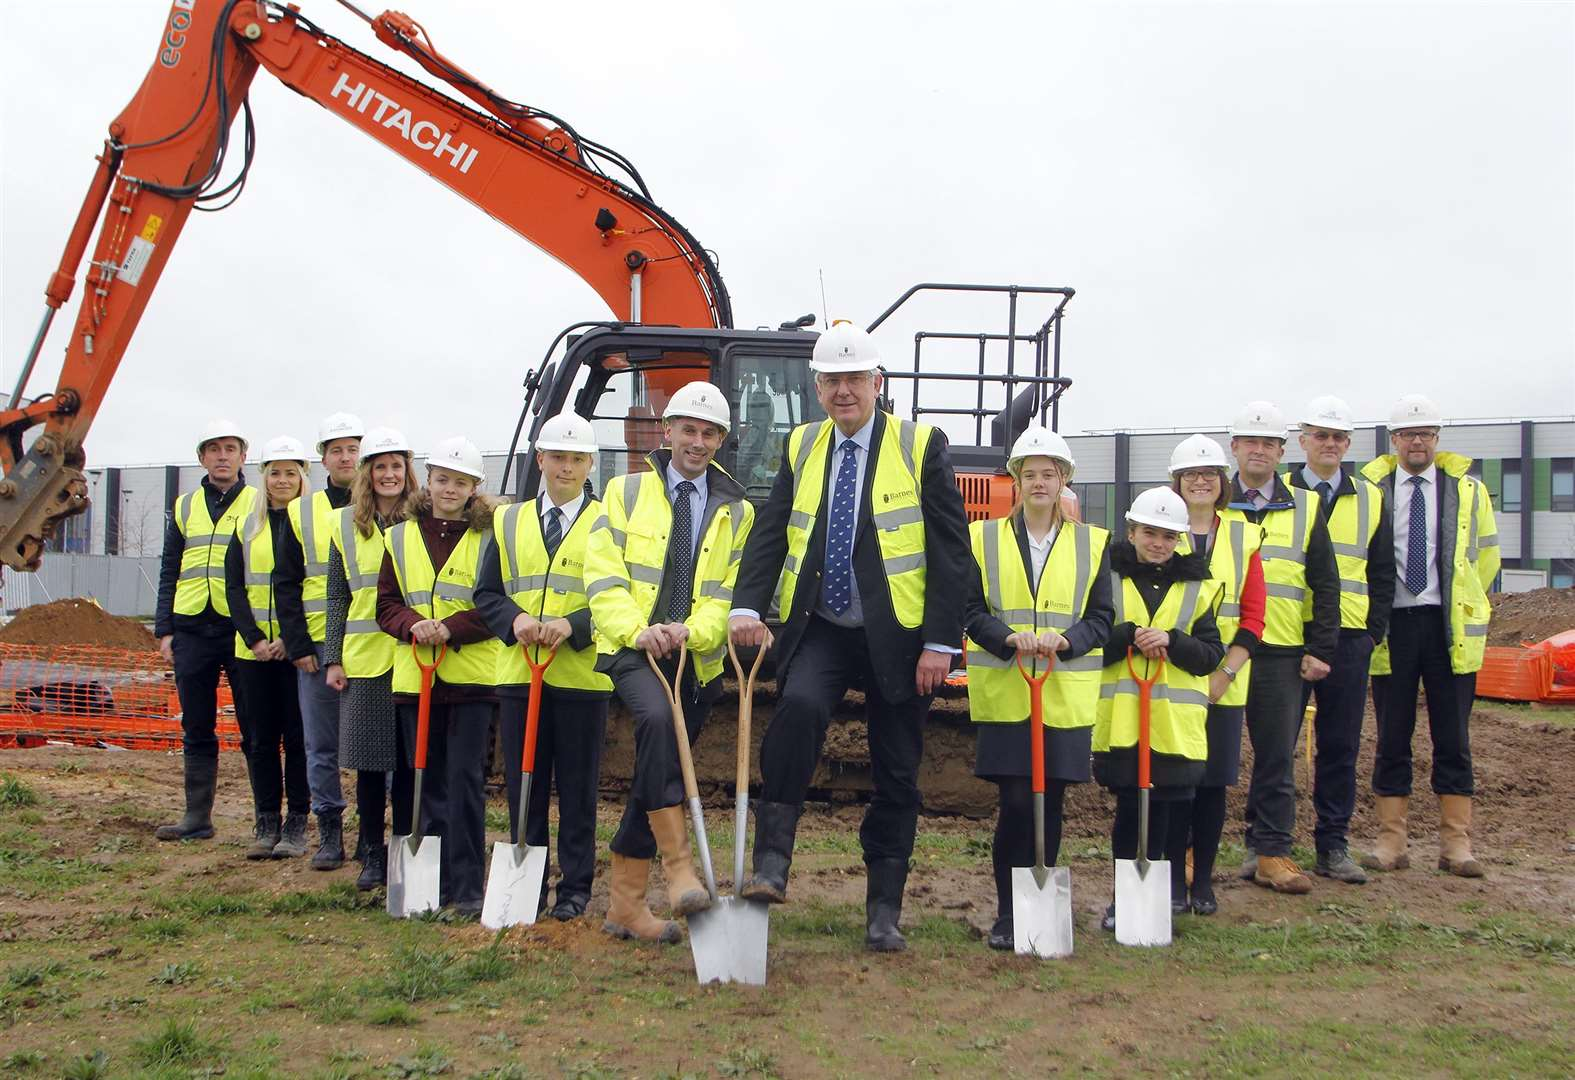 Construction starts on new teaching blocks at Bury St Edmunds school